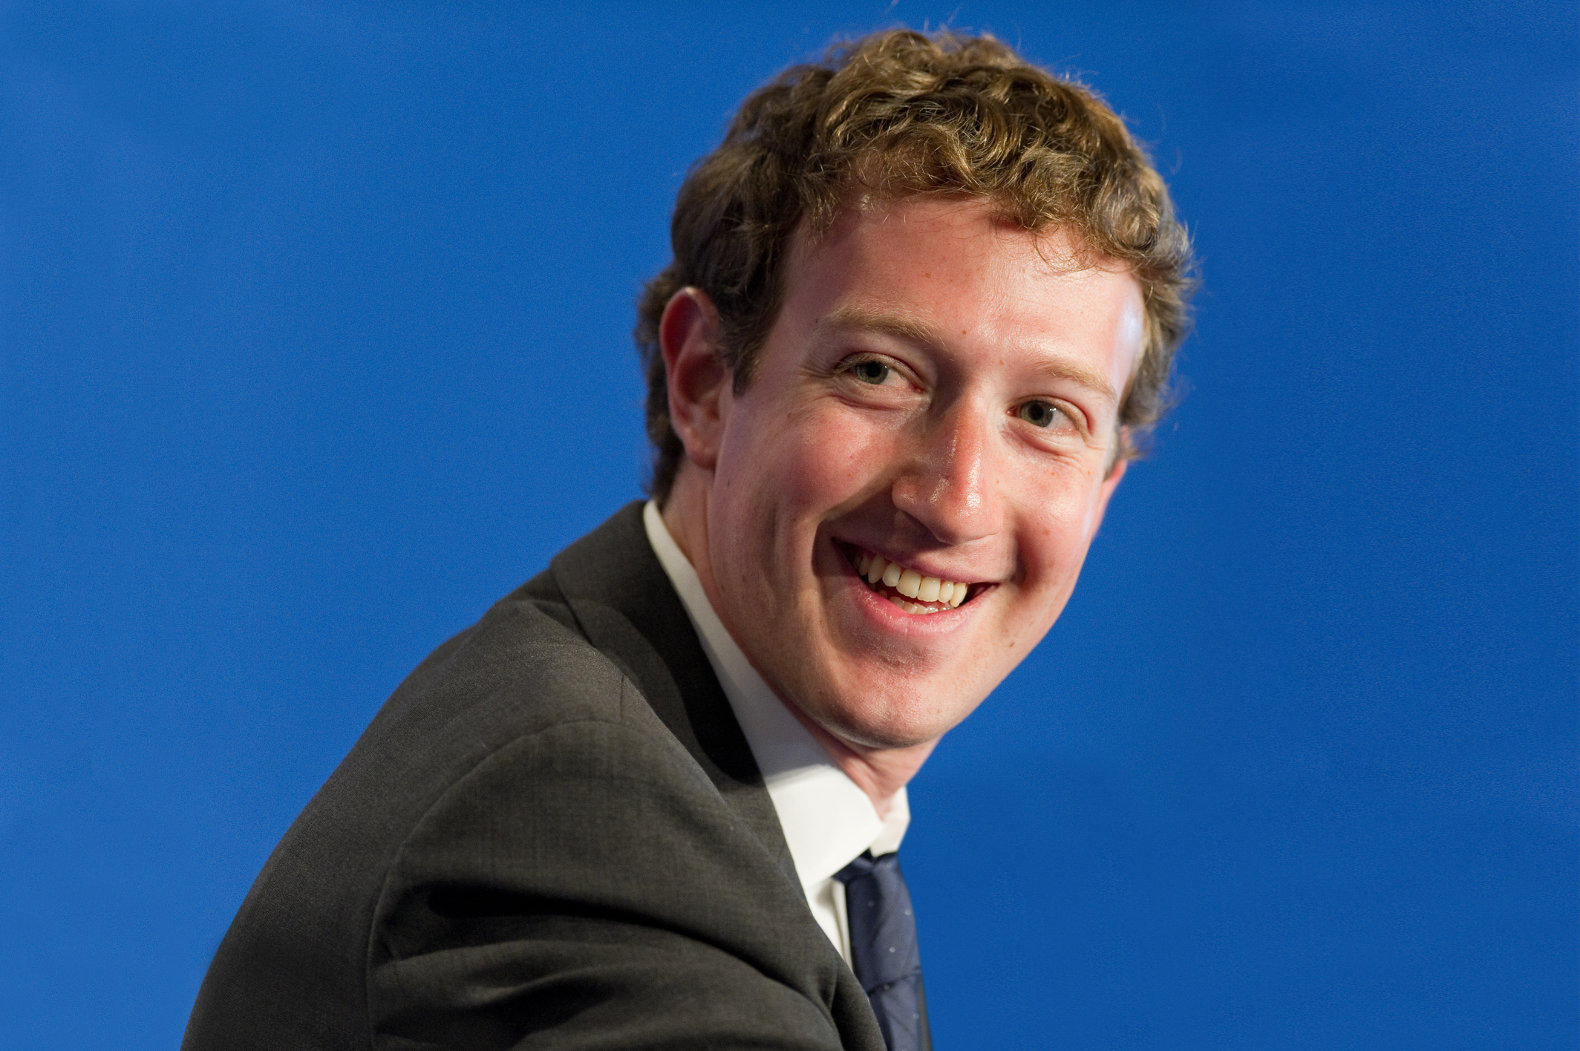 """Mark Zuckerberg is building a home AI system """"kind of like ..."""